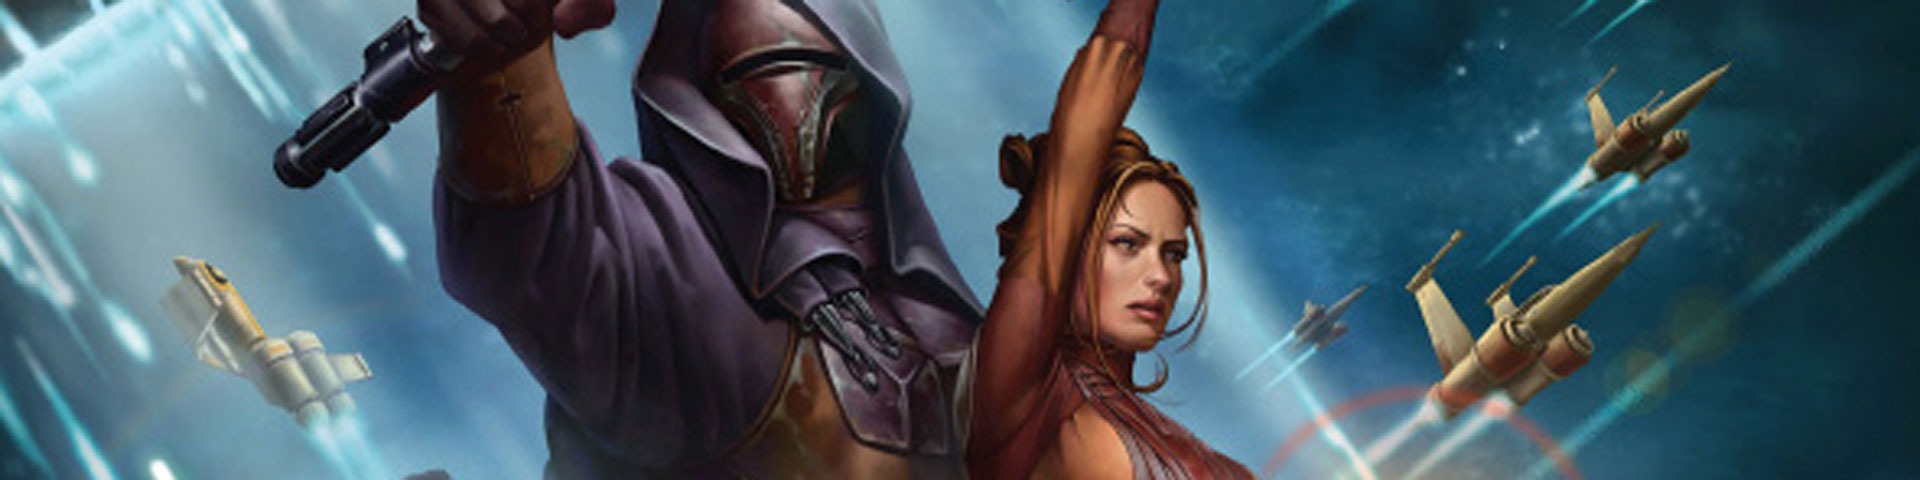 An armored Sith lord and a woman in brown clothing hold lightsabers aloft.